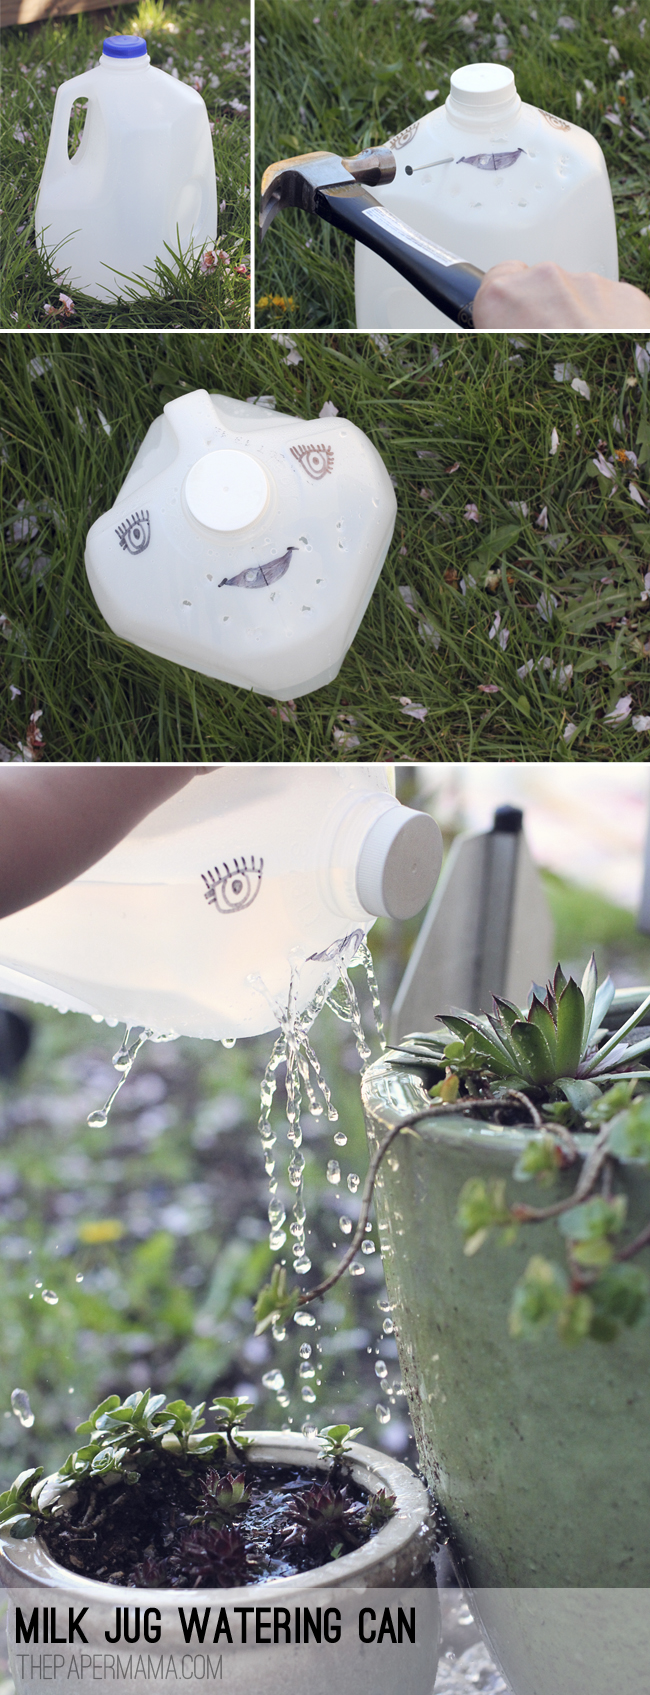 Milk Jug Watering Can // thepapermama.com